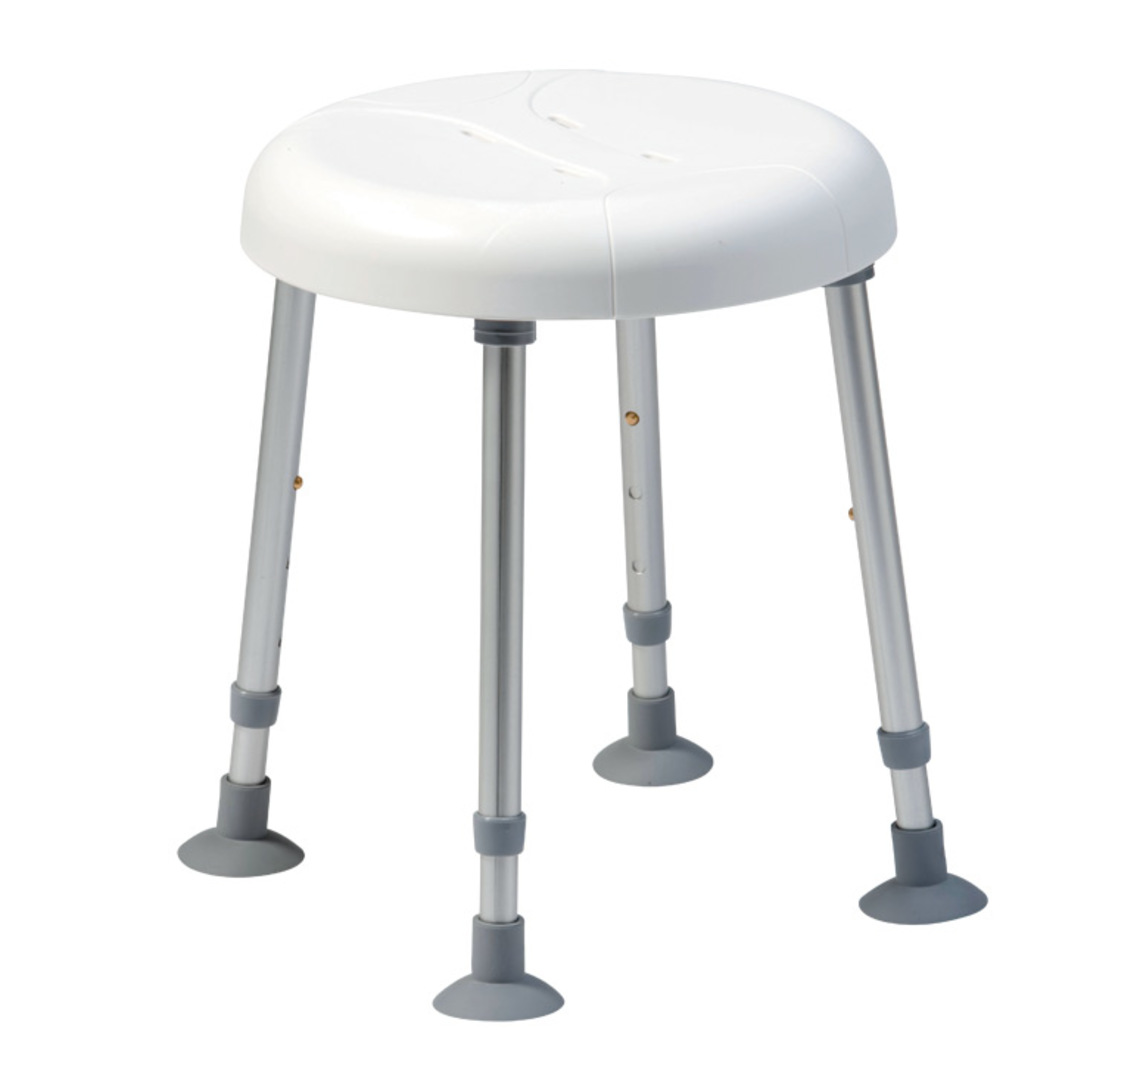 Delphi Shower Stool World Of Scooters Manchester